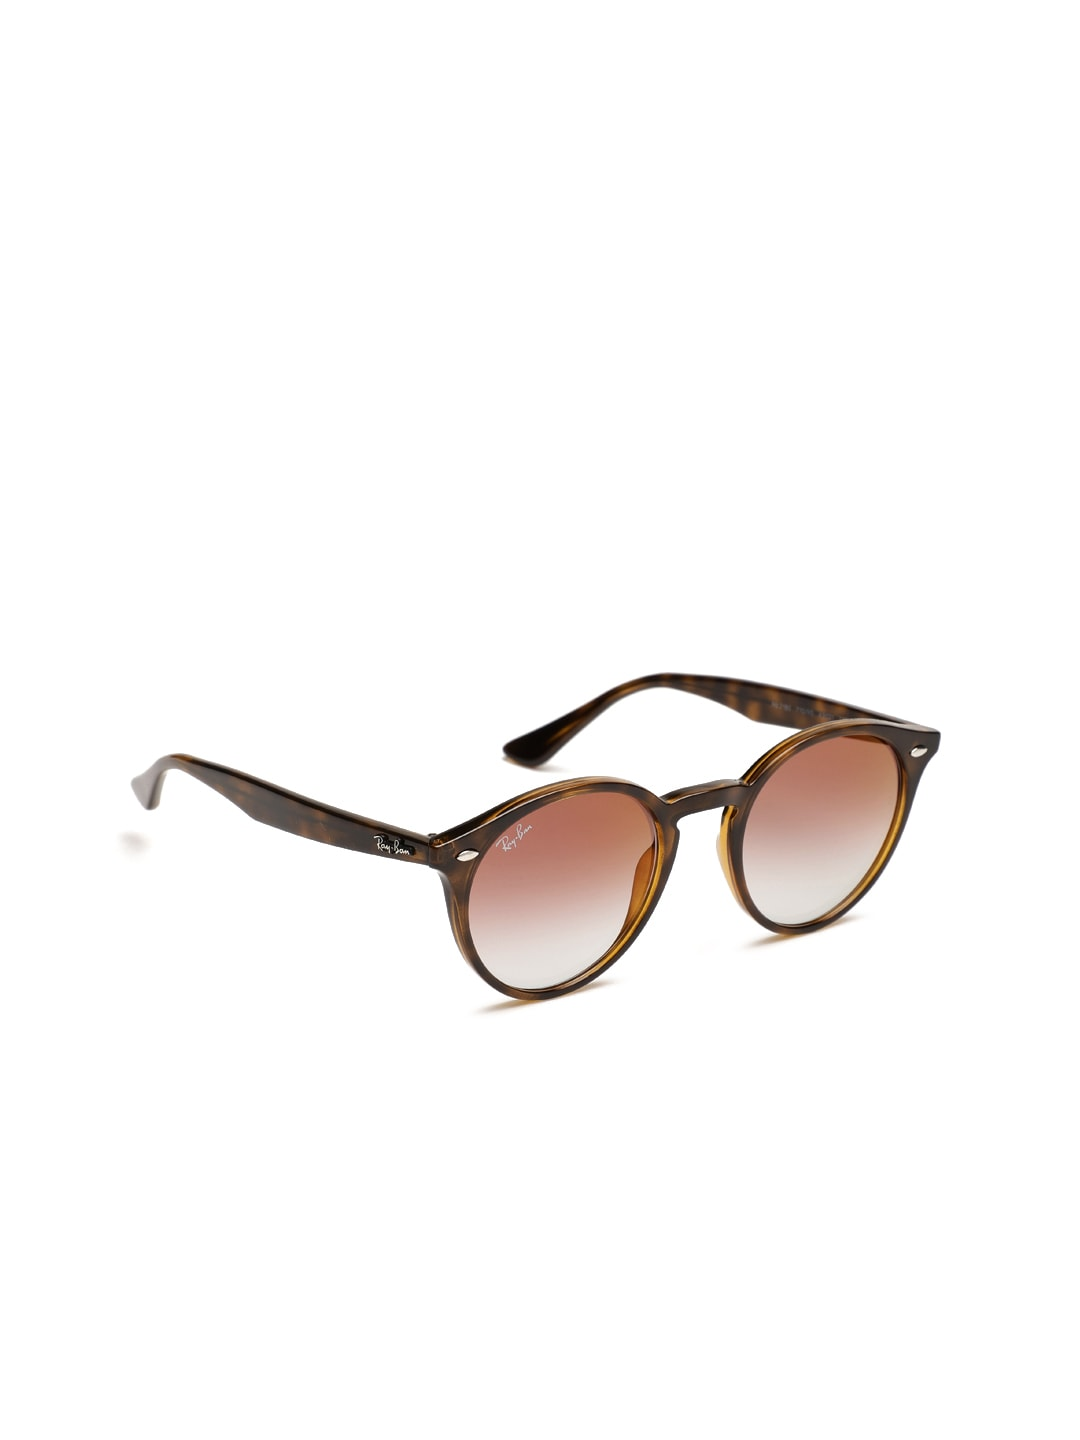 4f9cd67ed11a6 Red Sunglasses - Buy Red Sunglasses Online in India